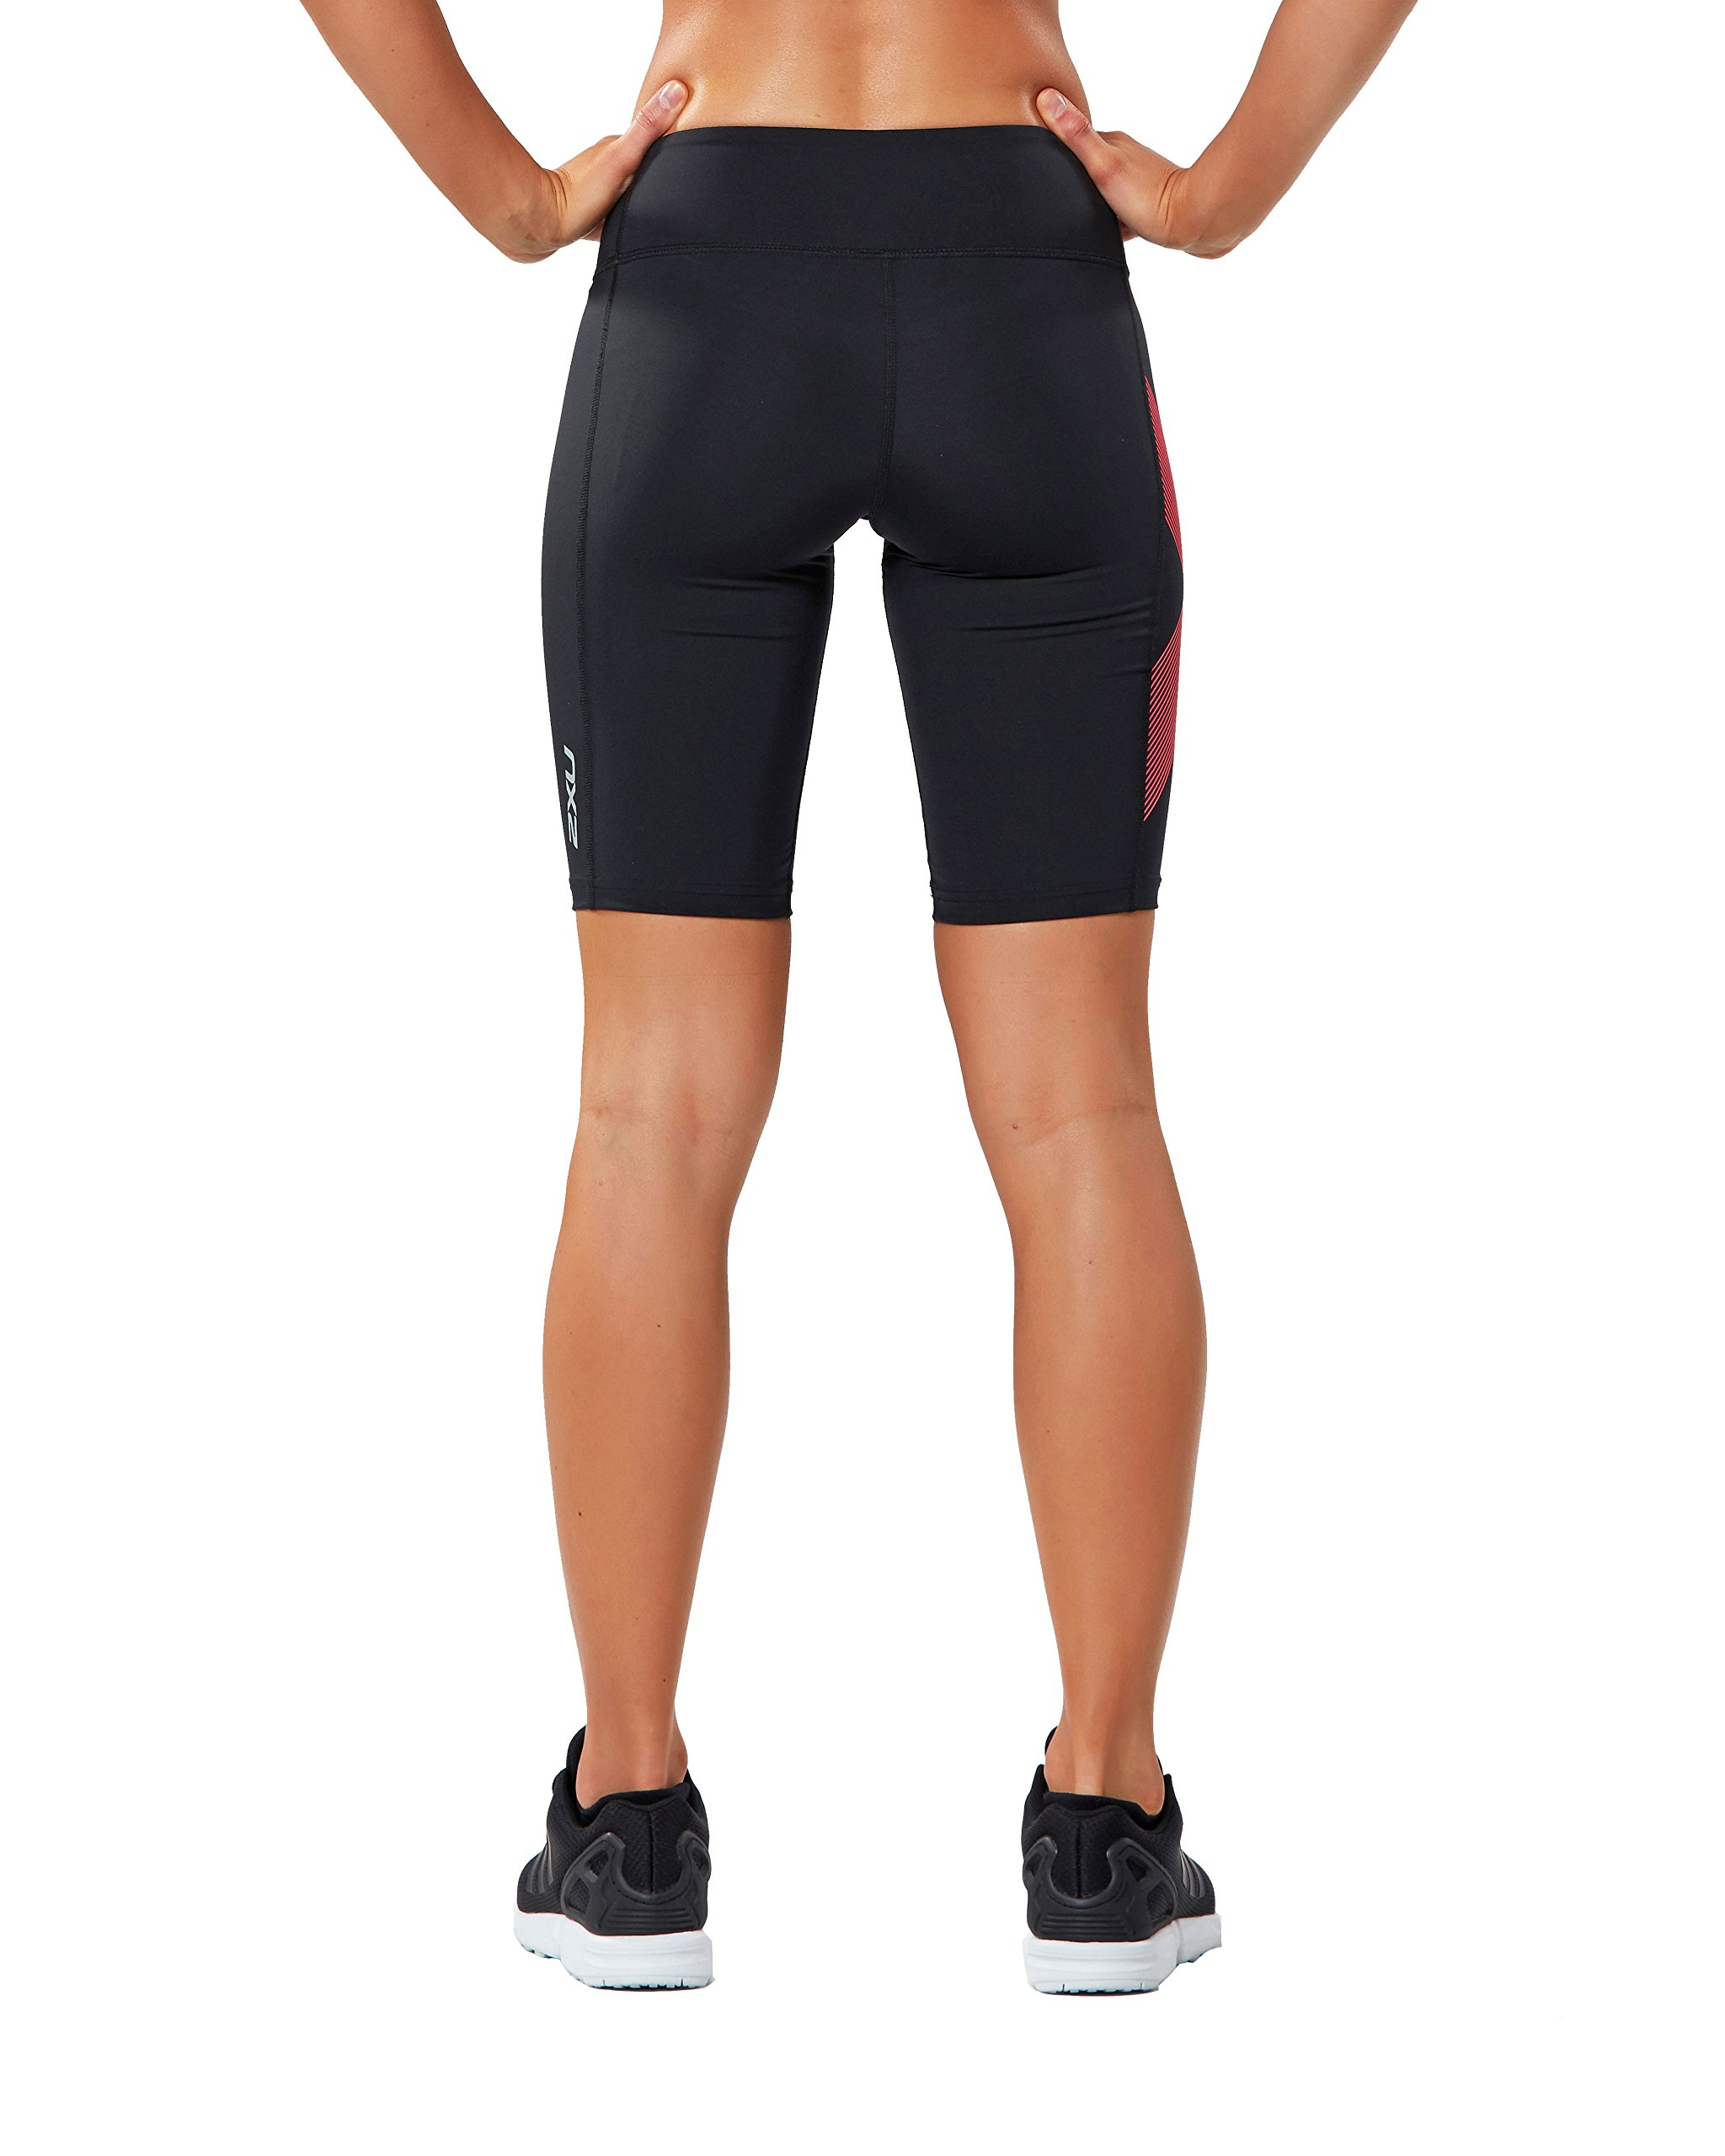 2XU Women's Mid-Rise Compression Shorts, Black/Striped Pink Glow, Small by 2XU (Image #3)